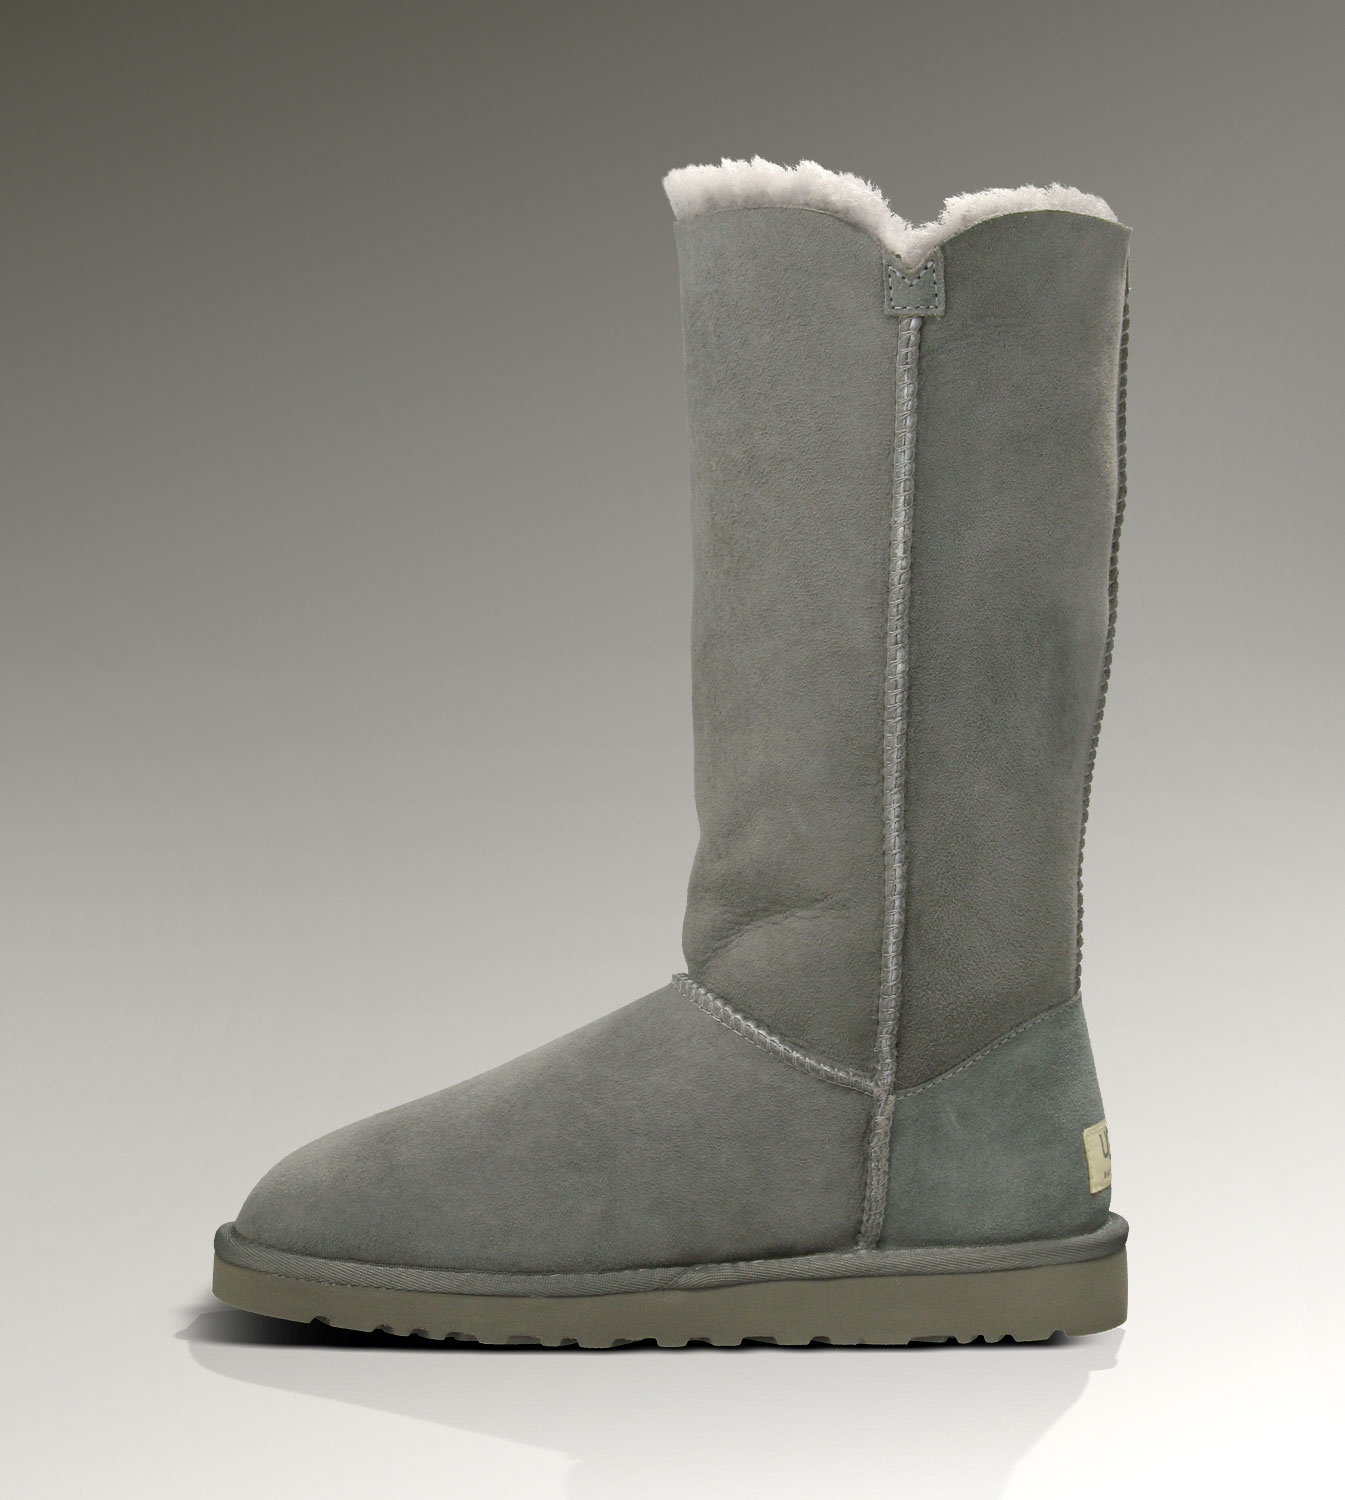 UGG Bailey Button Triplet 1873 Grey Boots